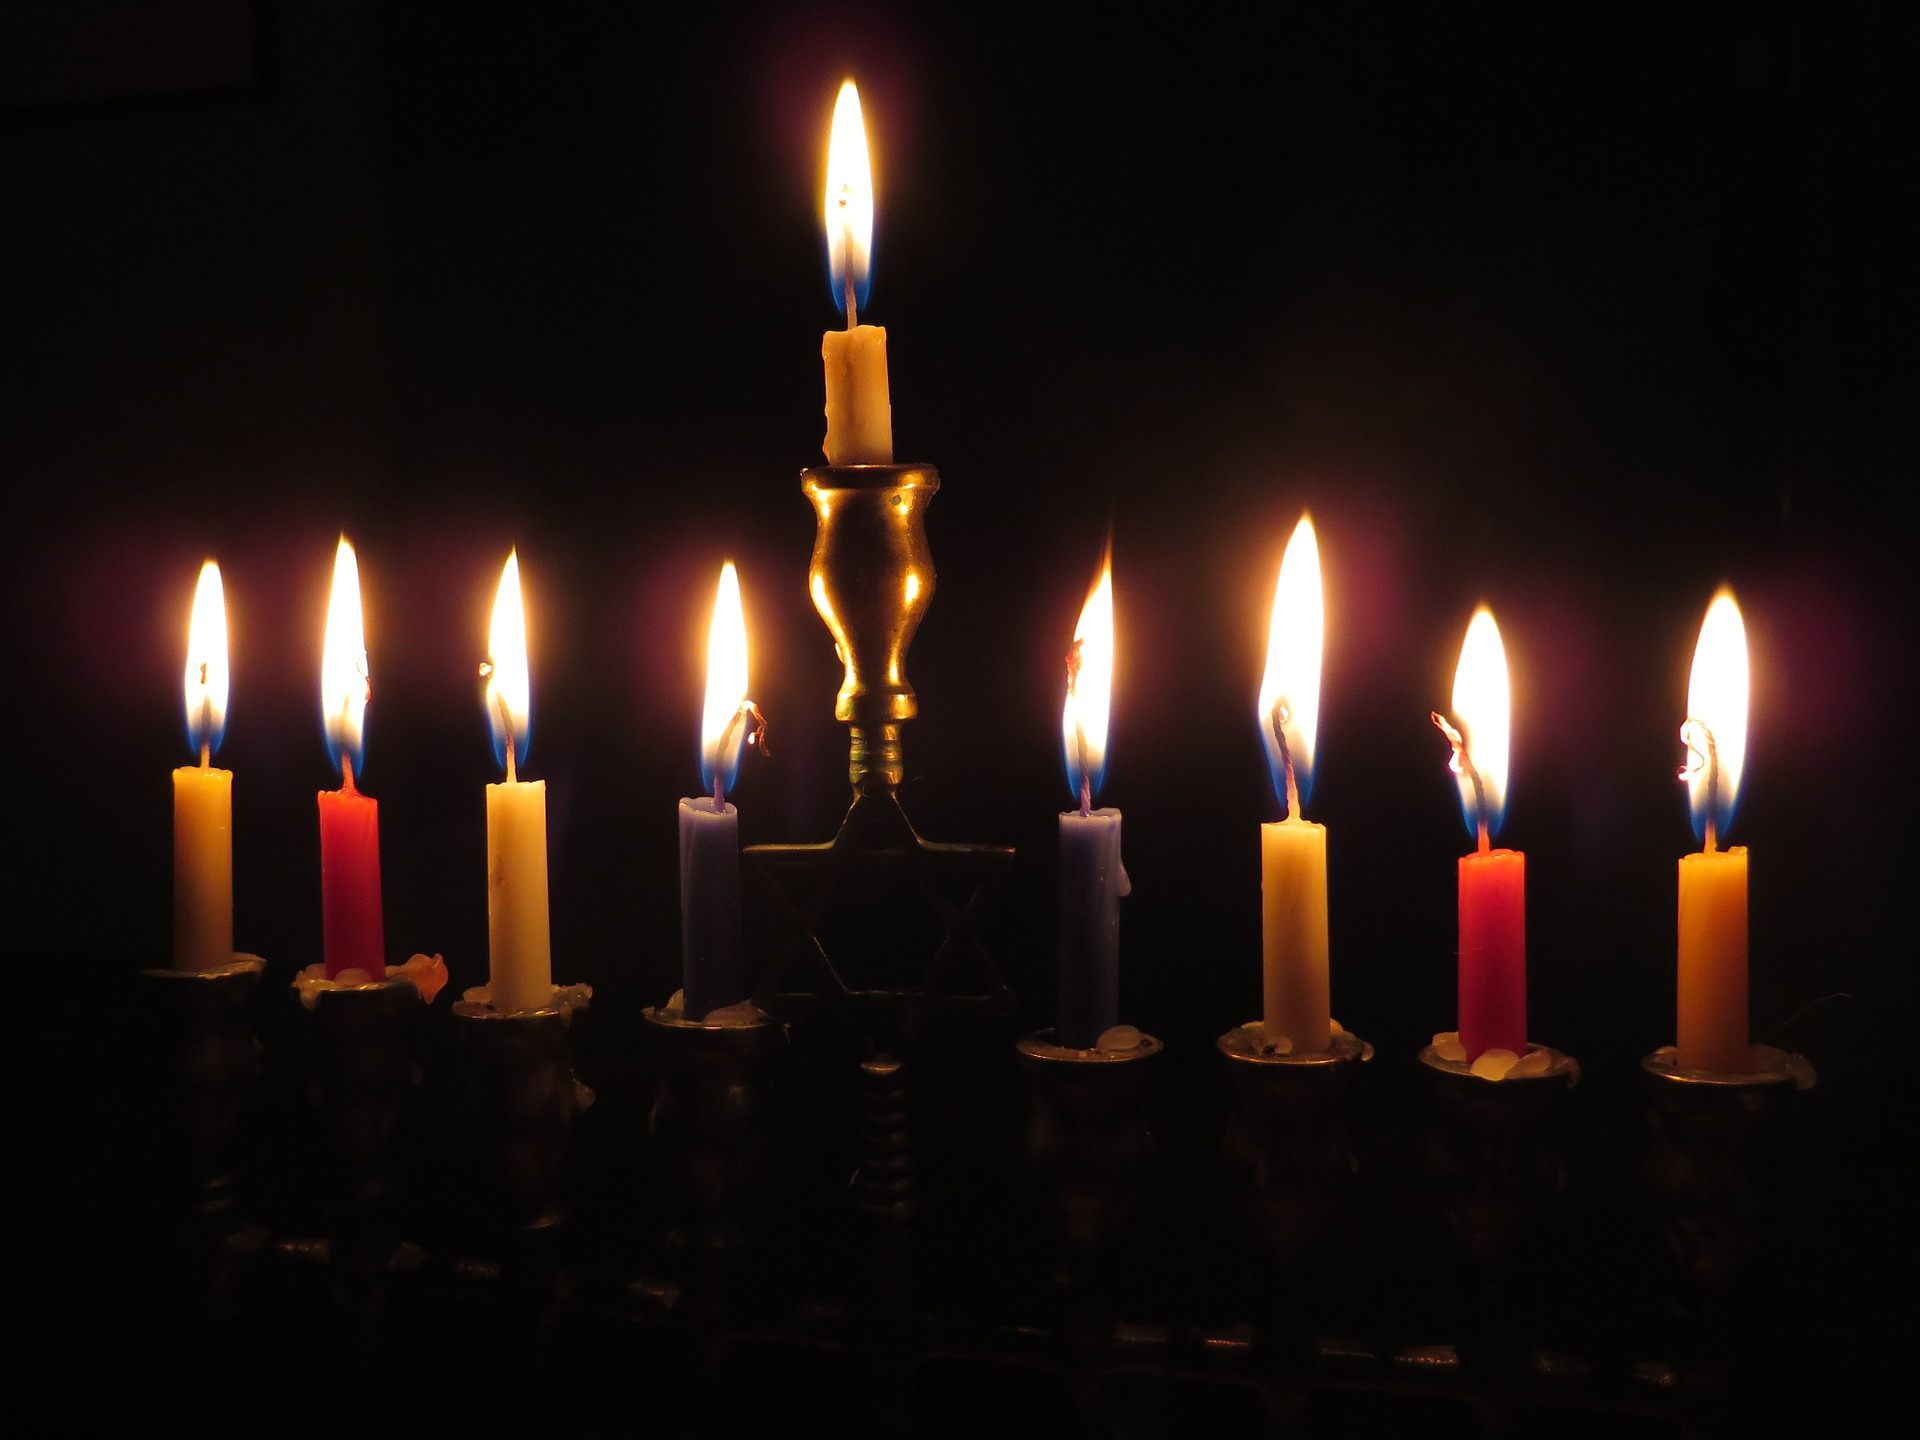 Candles in a menorah.